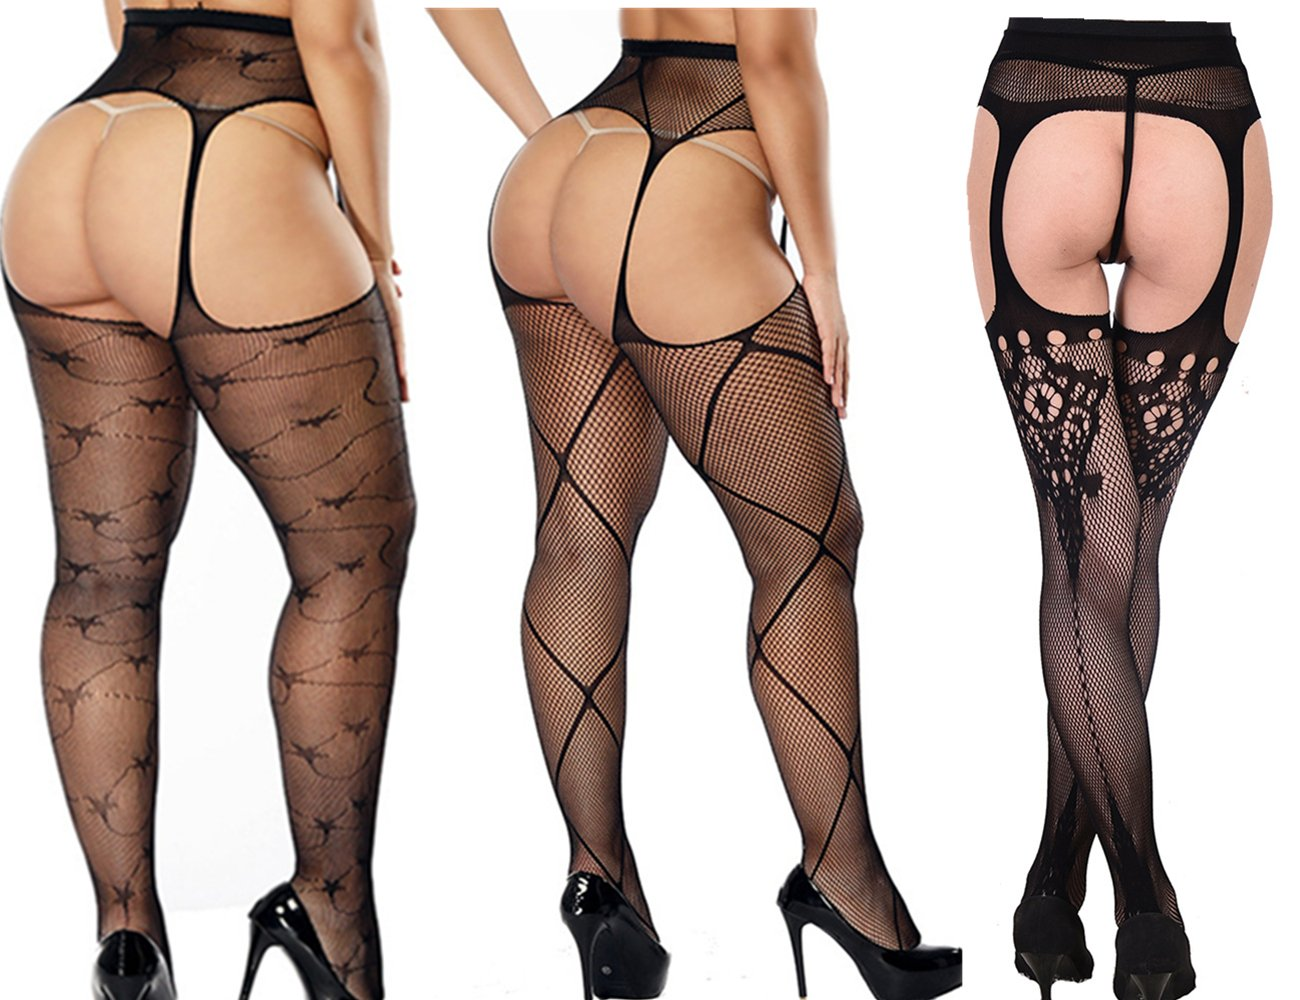 2 Pack Womens Sheer Suspender High-Heel Panty-Hose and Tights With Black/Red Line Back-seam For Women Sexy Hosiery (Fishnet Black, 3)